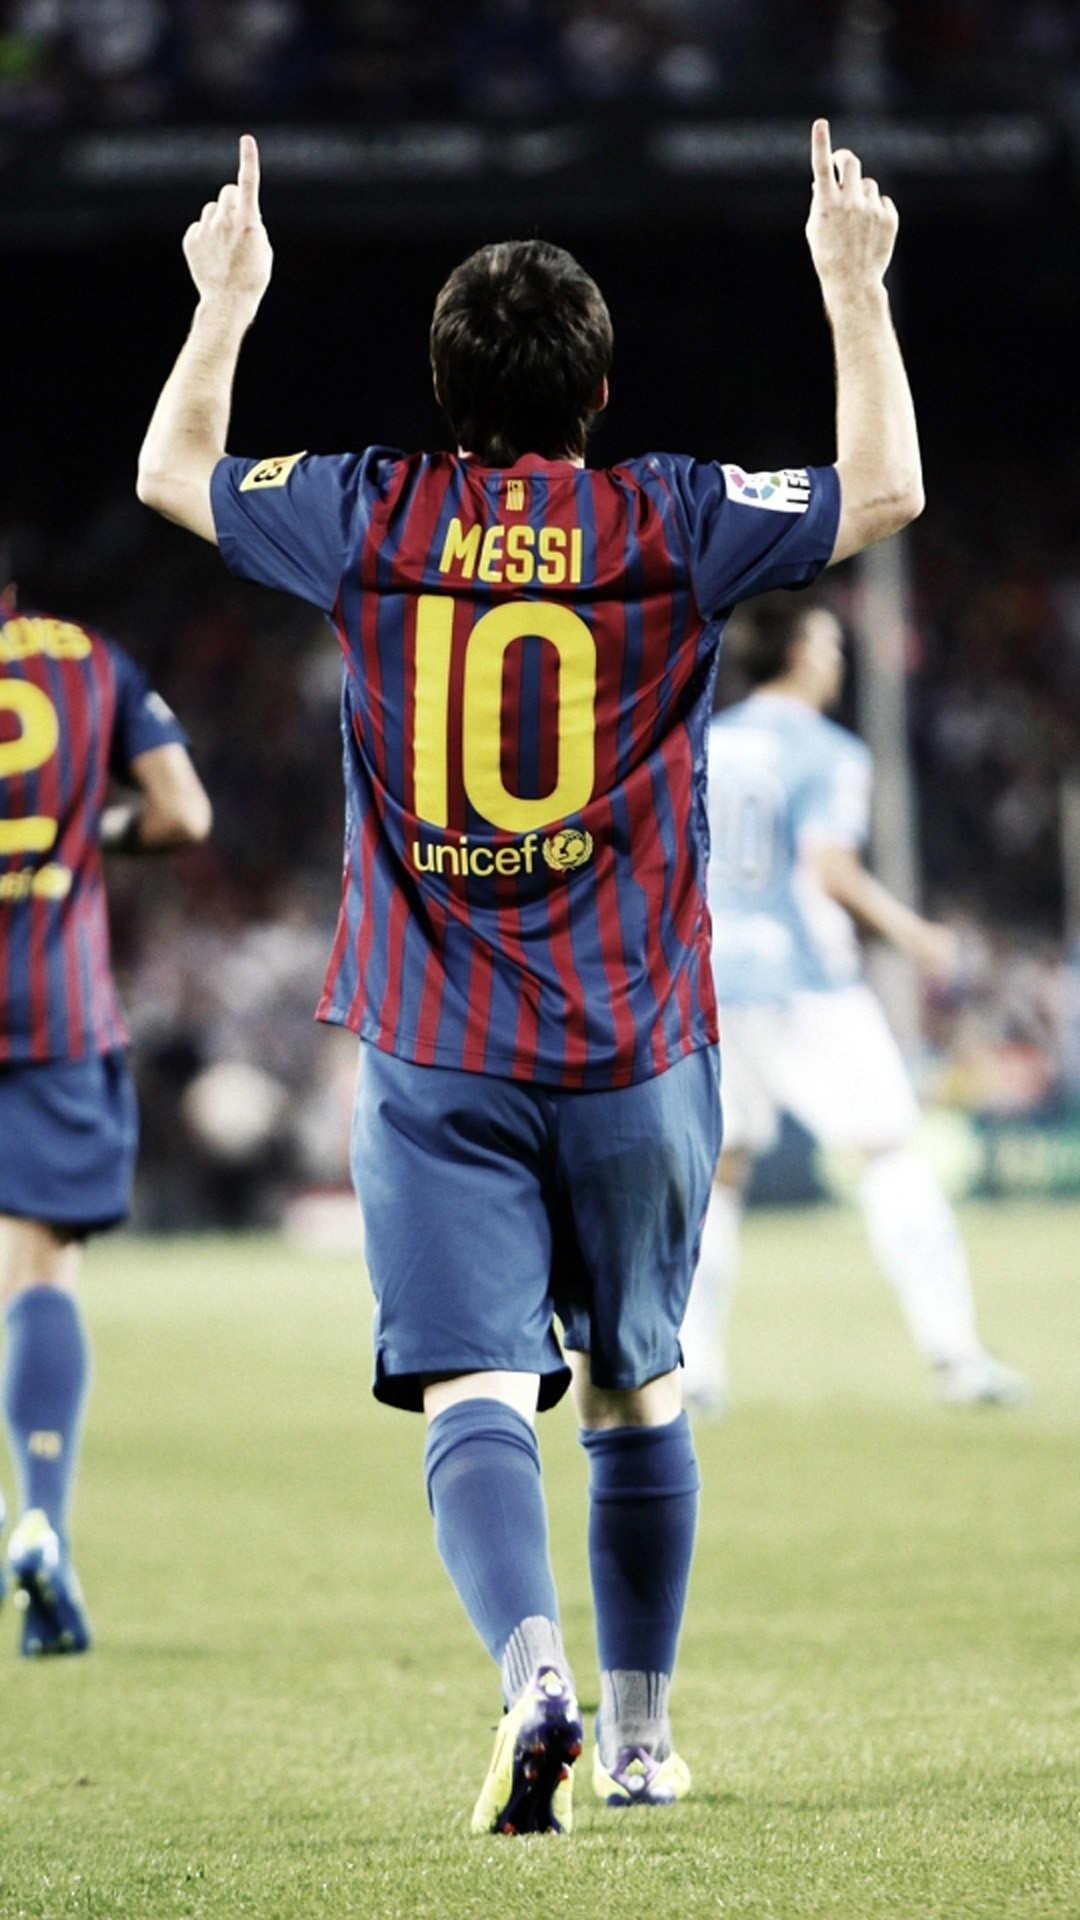 1080x1920 Lionel Messi Wallpaper Iphone 6 - Download Best Lionel Messi Wallpaper  Iphone 6for iPhone Wallpaper inHigh